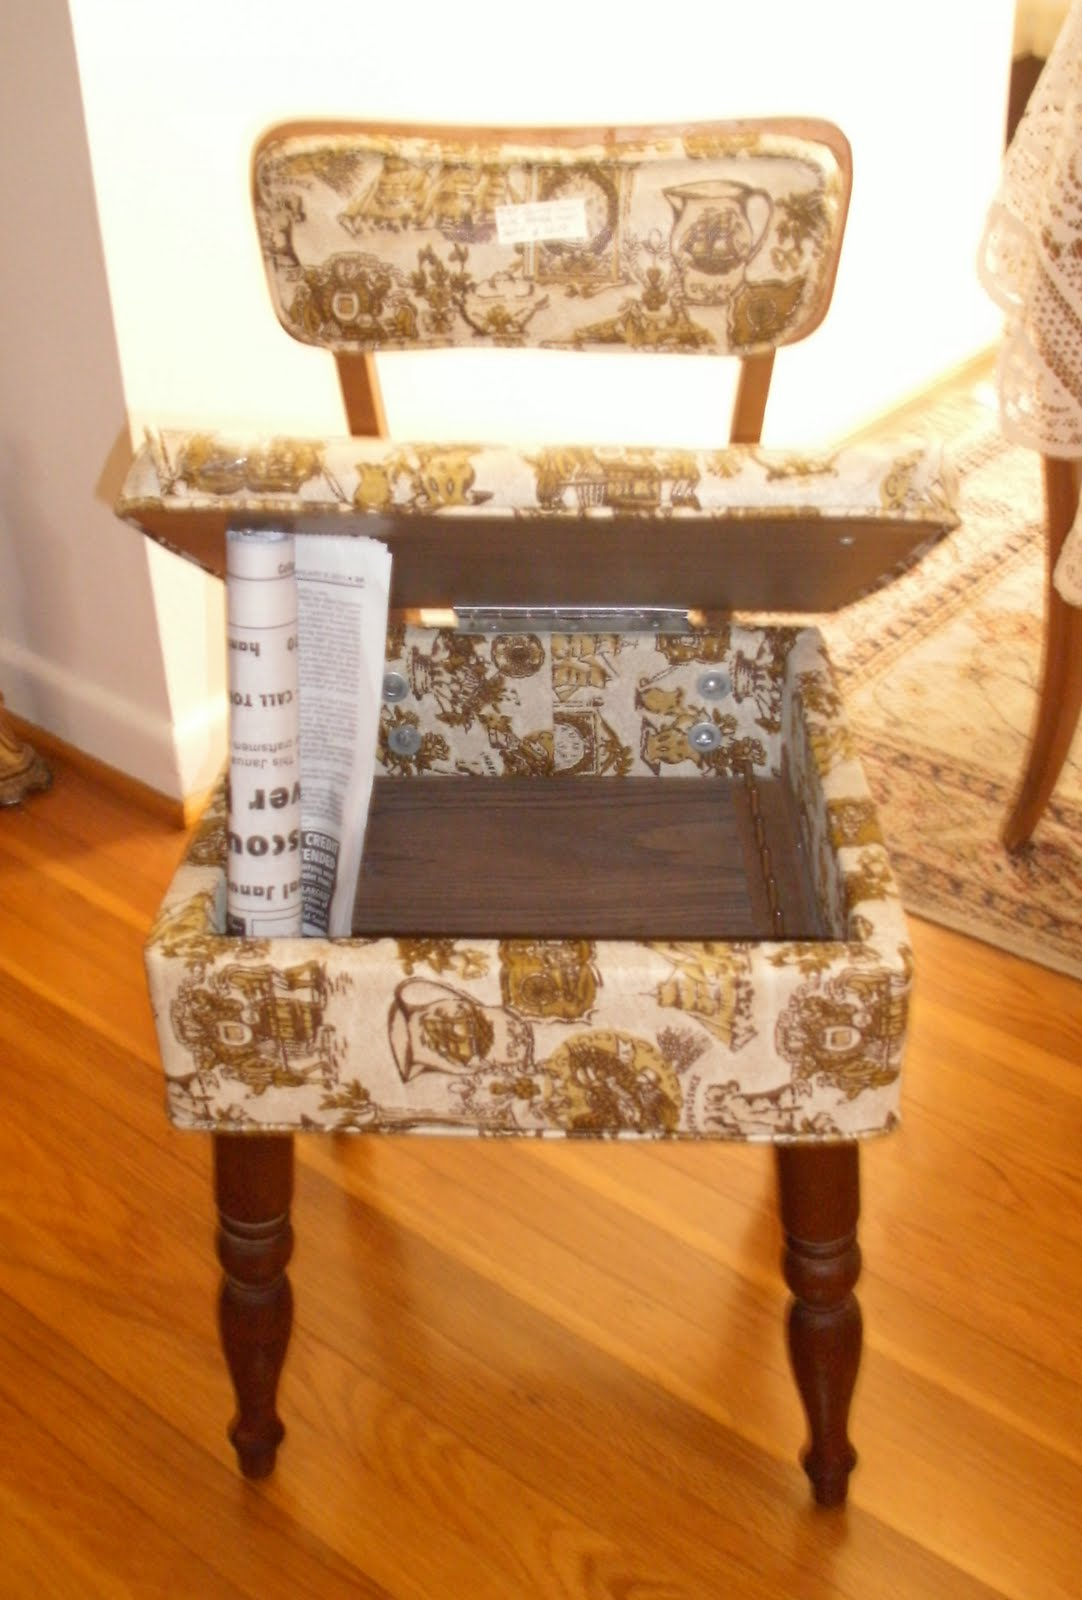 Sewing Chair With Storage Under The Seat 60 Booth 215